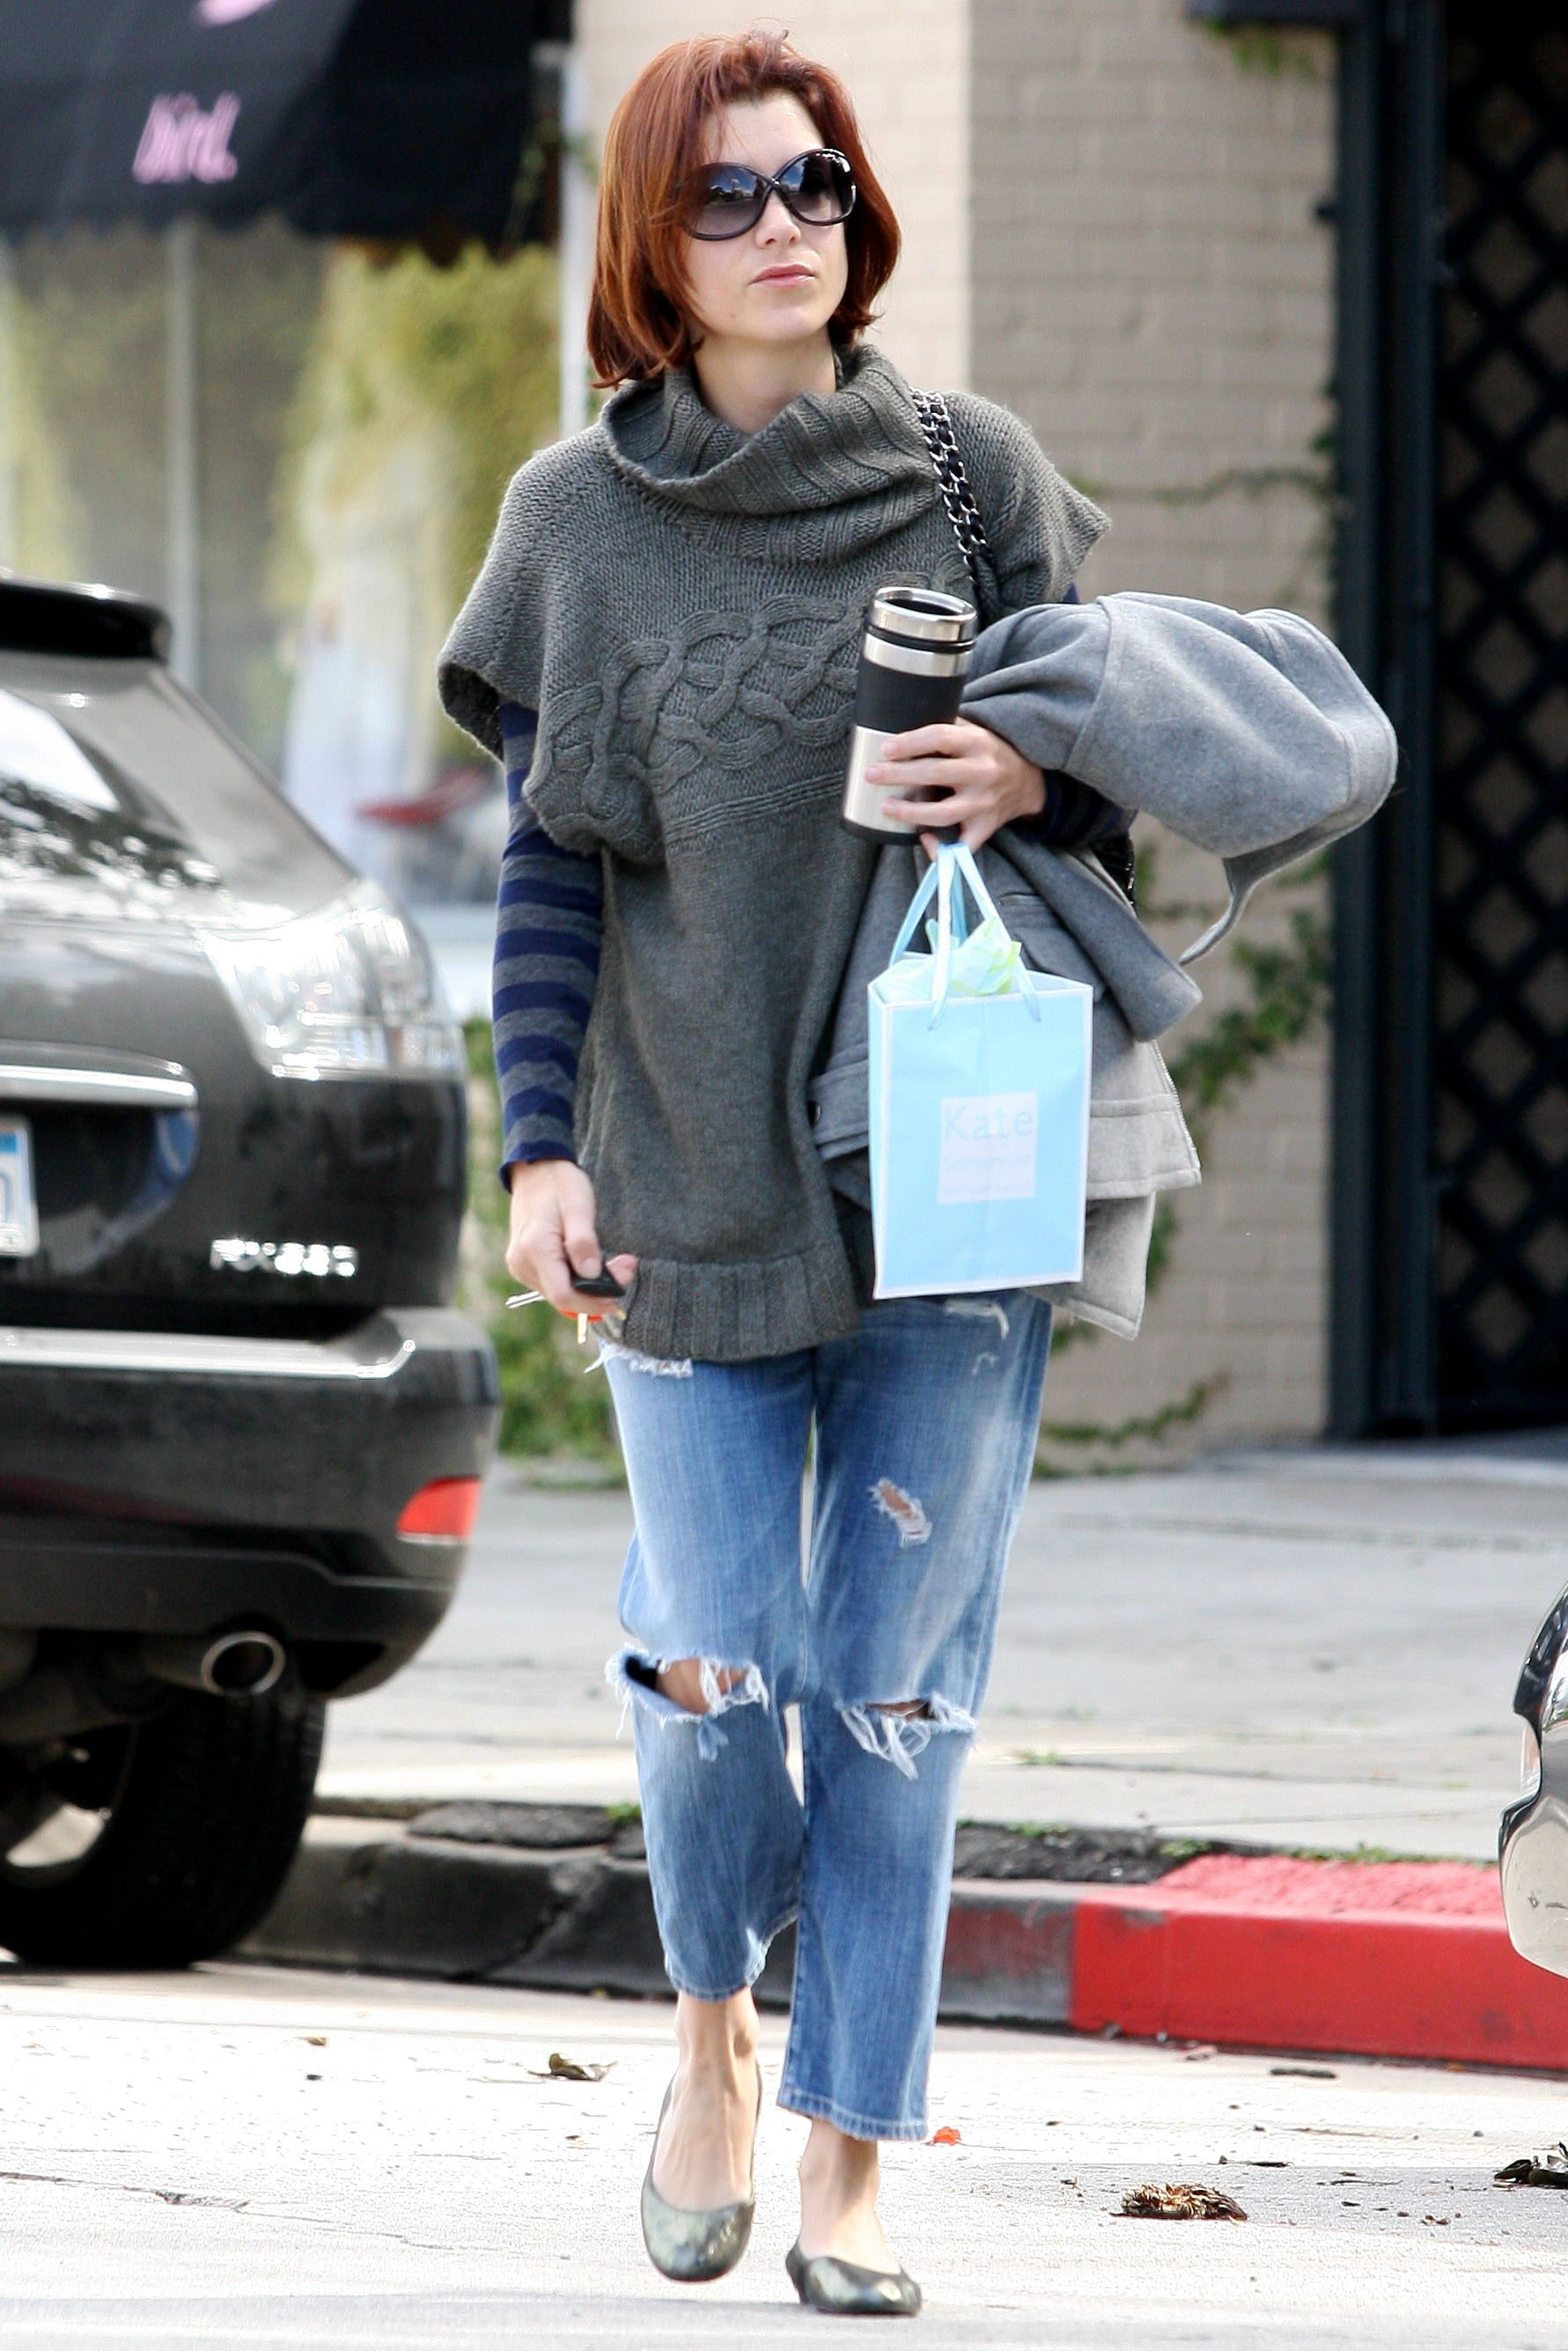 10848_Celebutopia-Kate_Walsh_with_ripped_jeans_in_Hollywood-09_122_1059lo.JPG